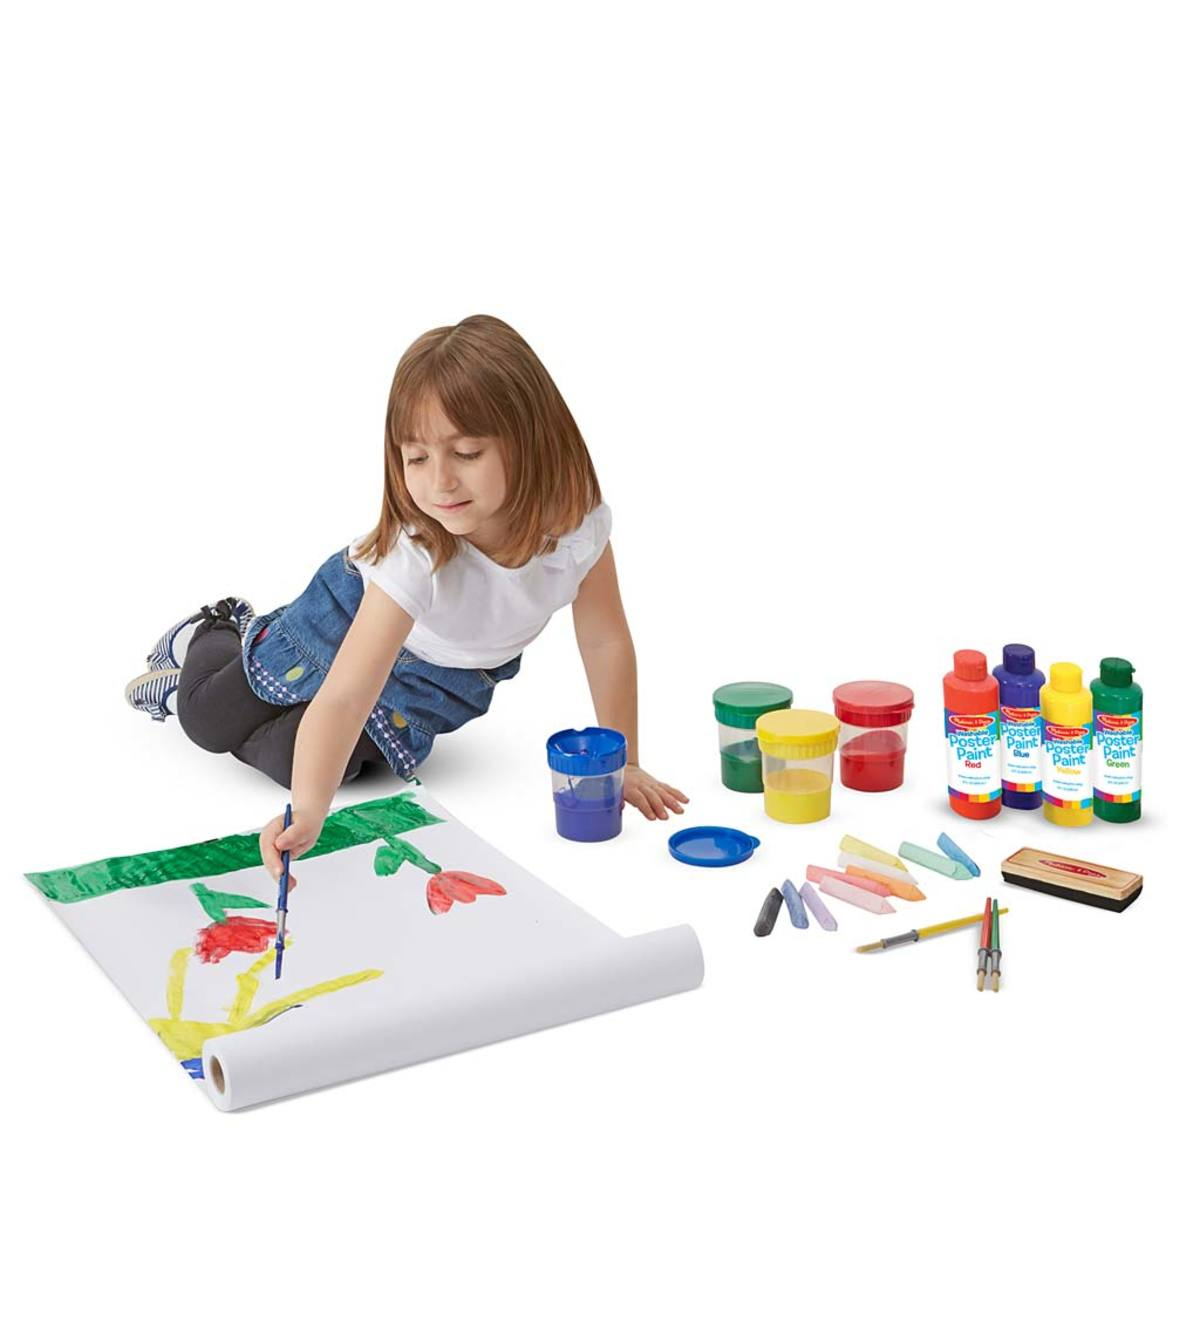 Easel Accessories Set